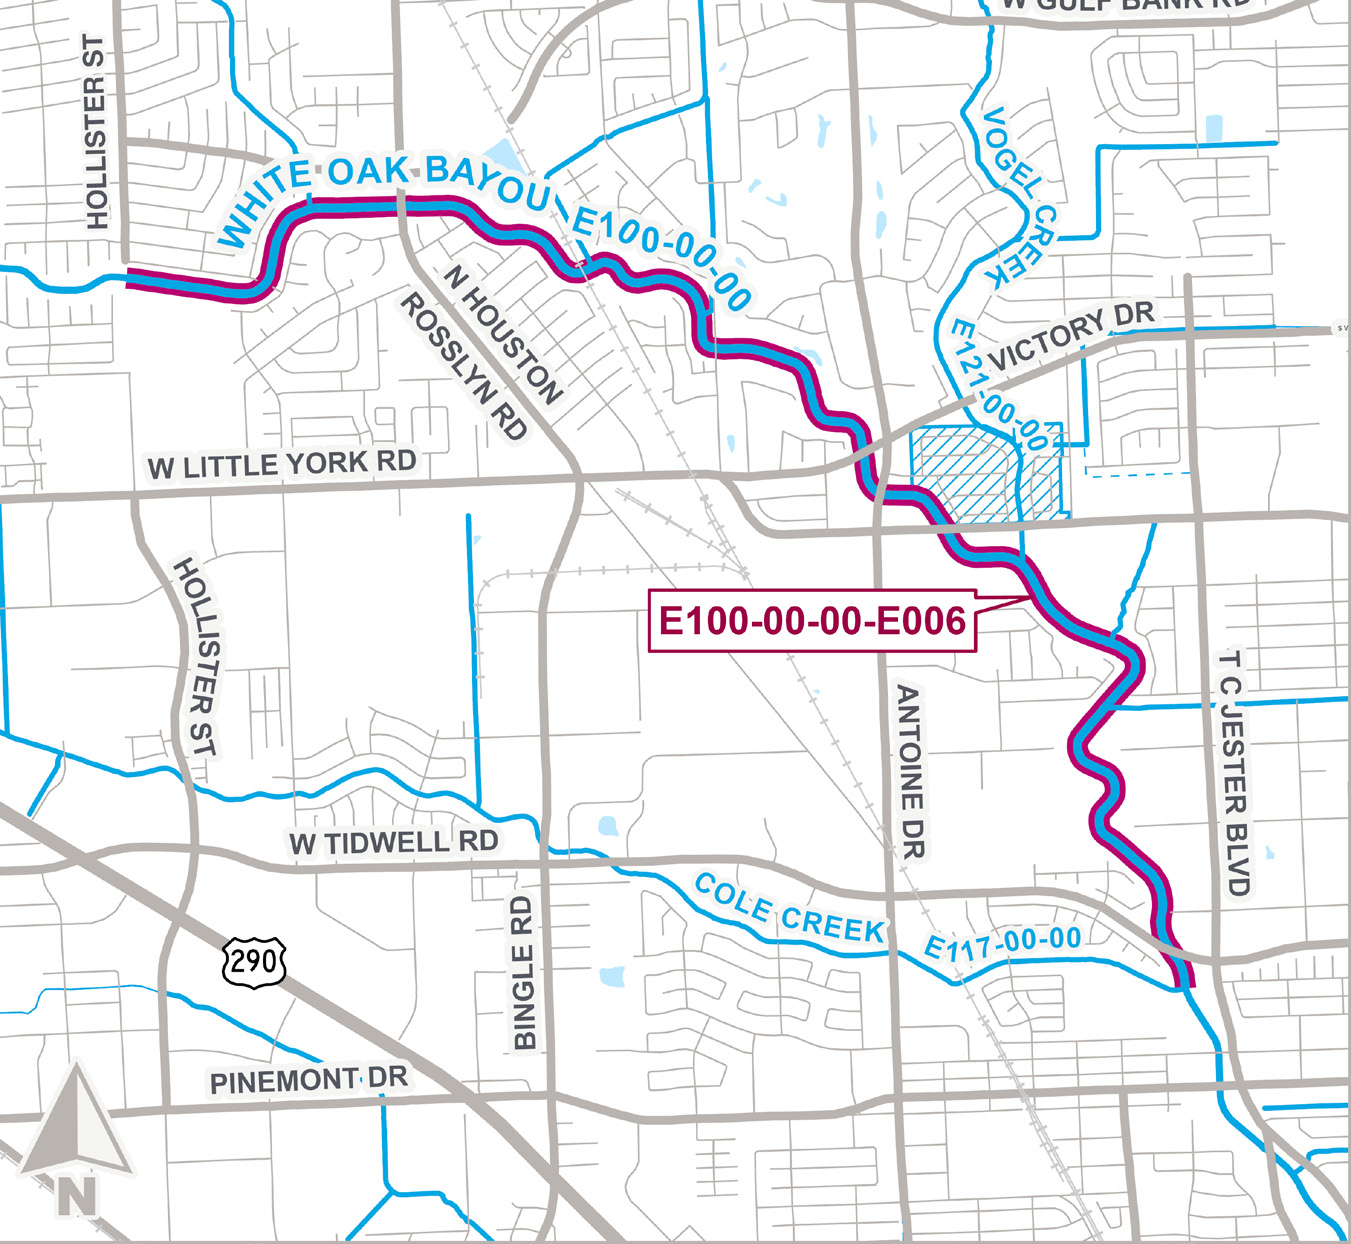 Construction Advisory for E100-00-00-E006 White Oak Bayou Federal Flood Damage Reduction Project